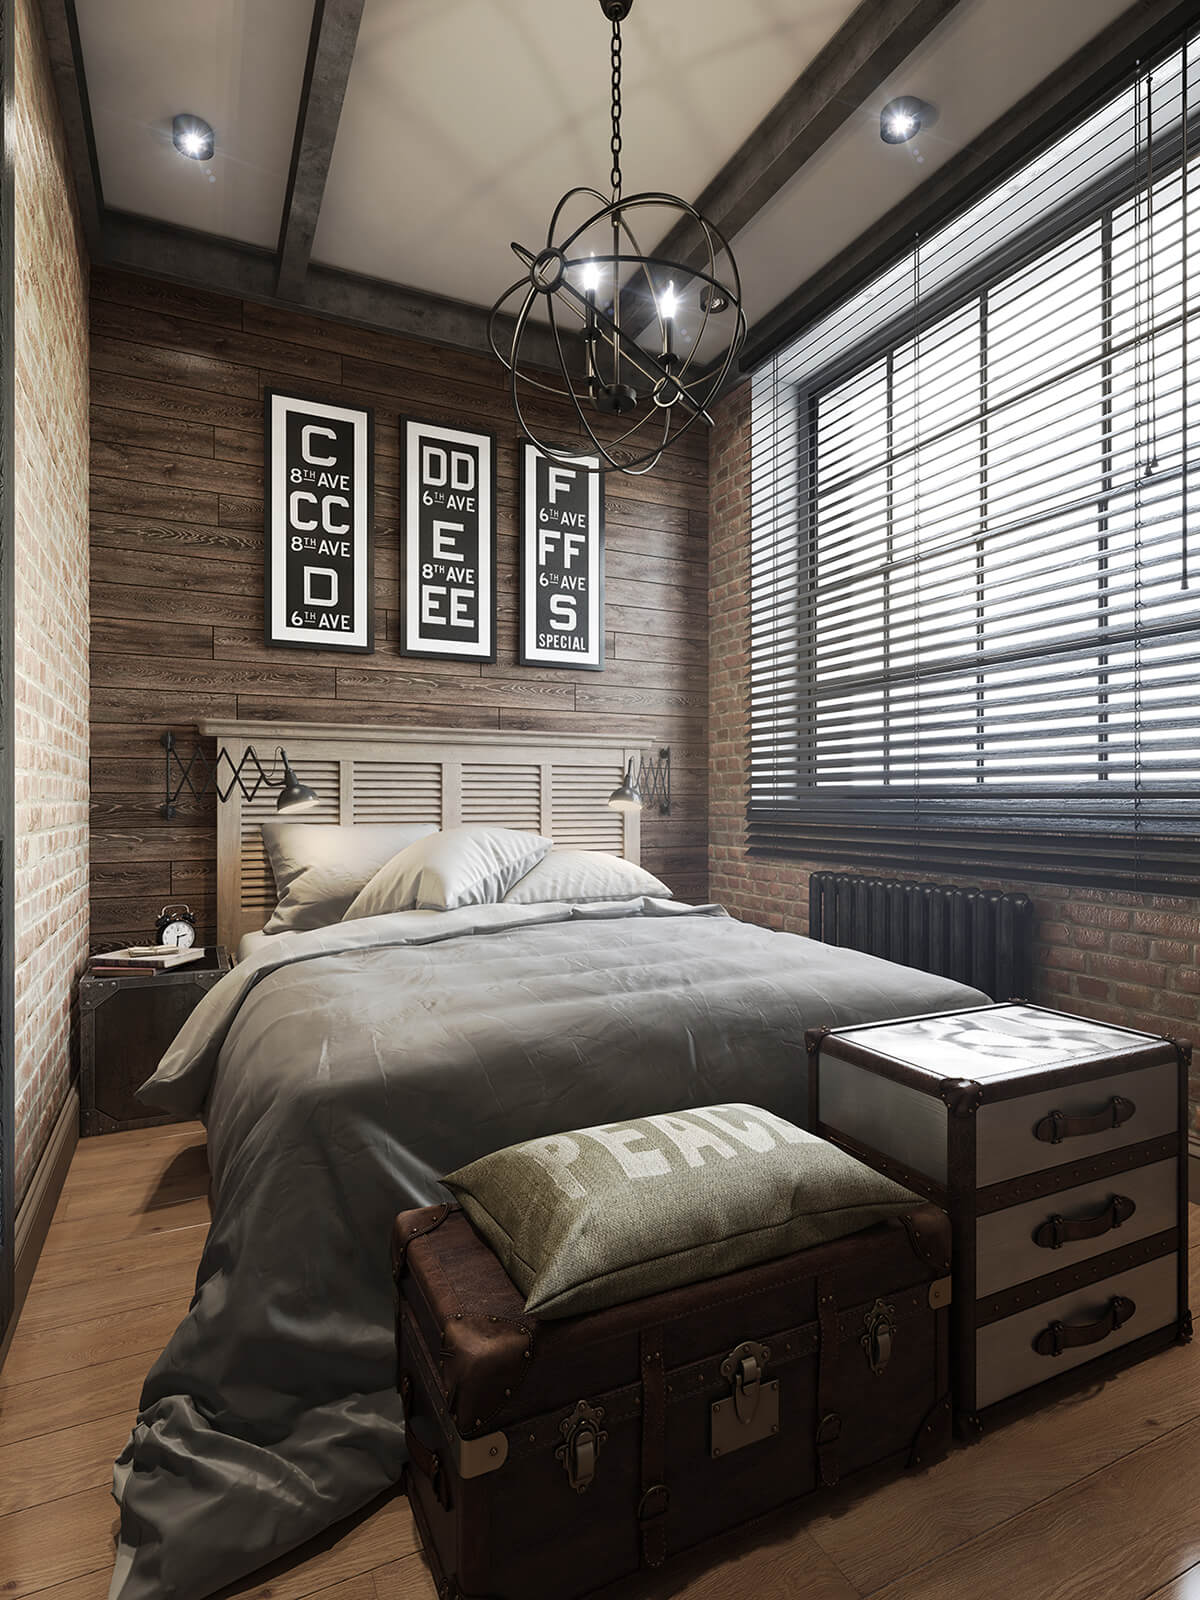 . 37 Best Small Bedroom Ideas and Designs for 2019